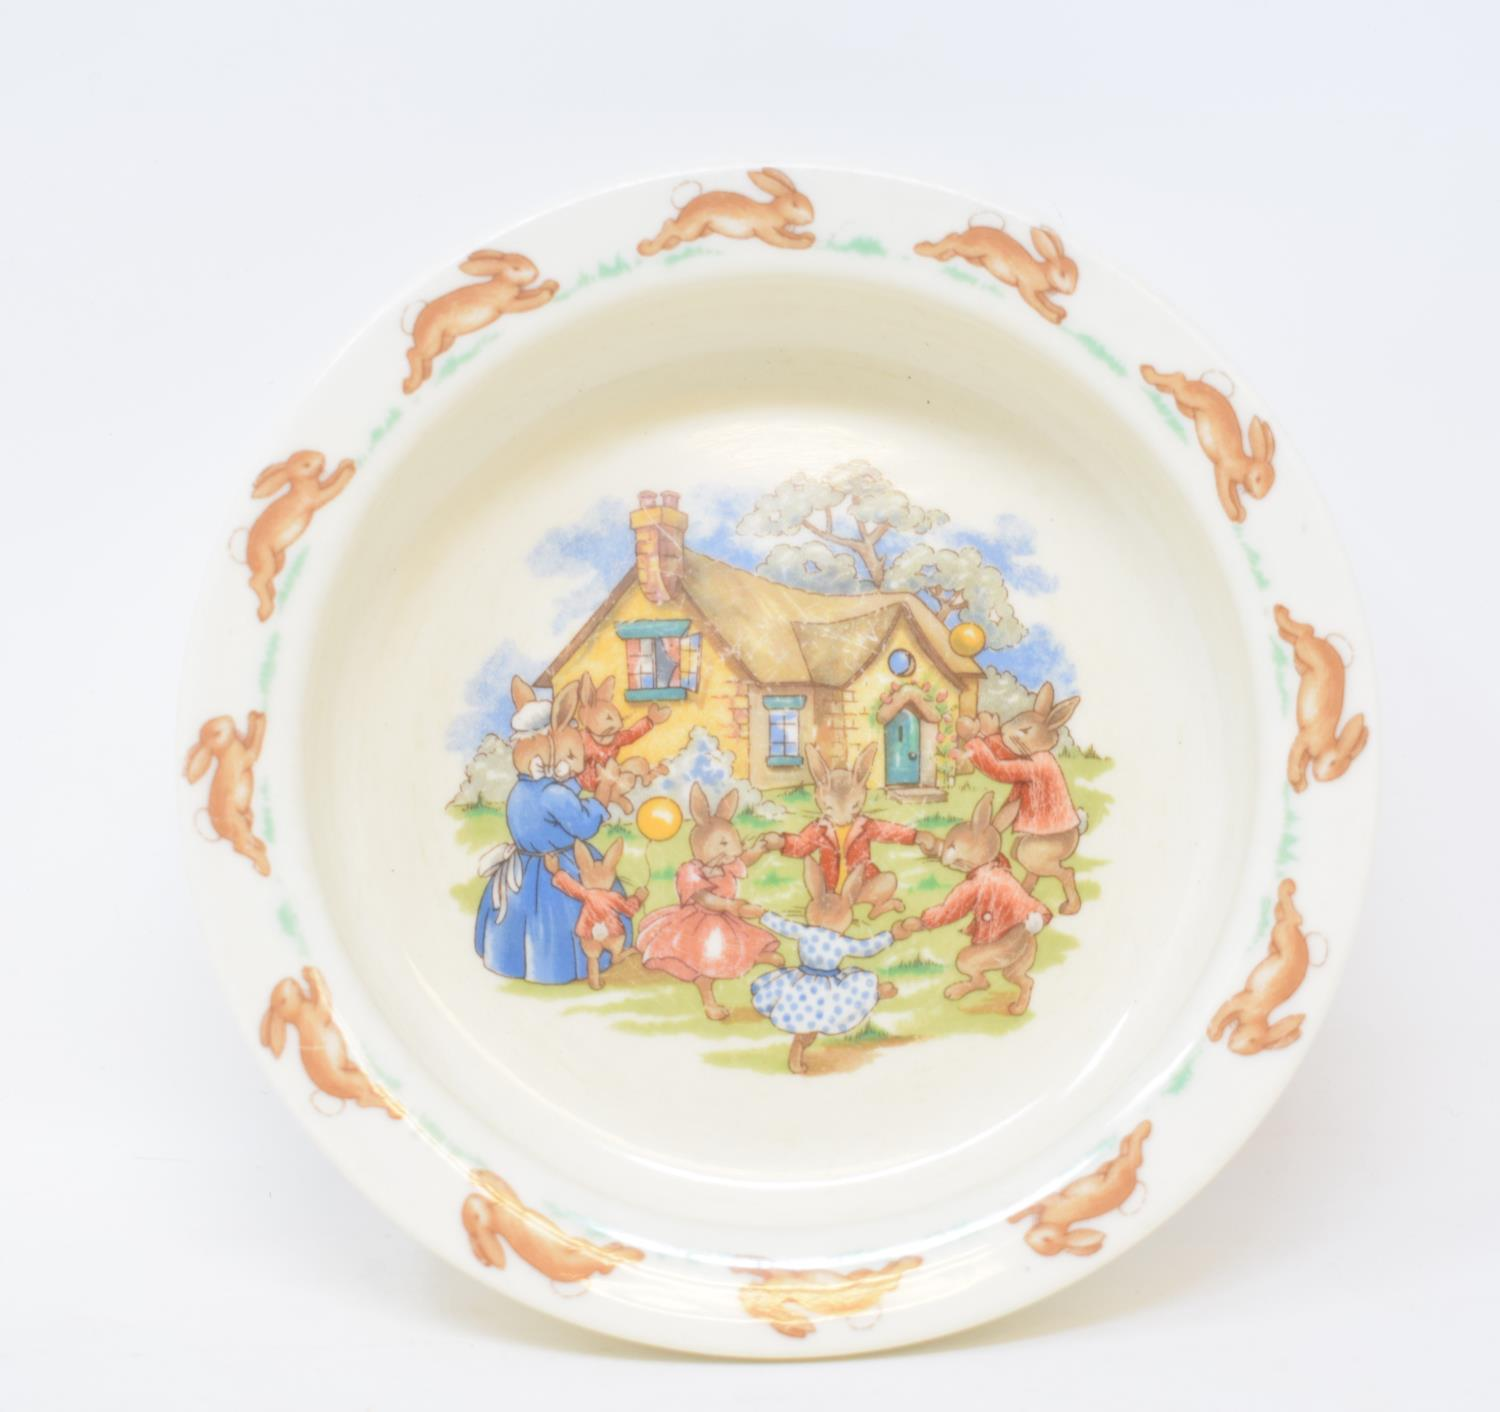 Lot 30 - A Royal Doulton Bunnykins bowl, a late Victorian small doll, other similar items, assorted ceramics,